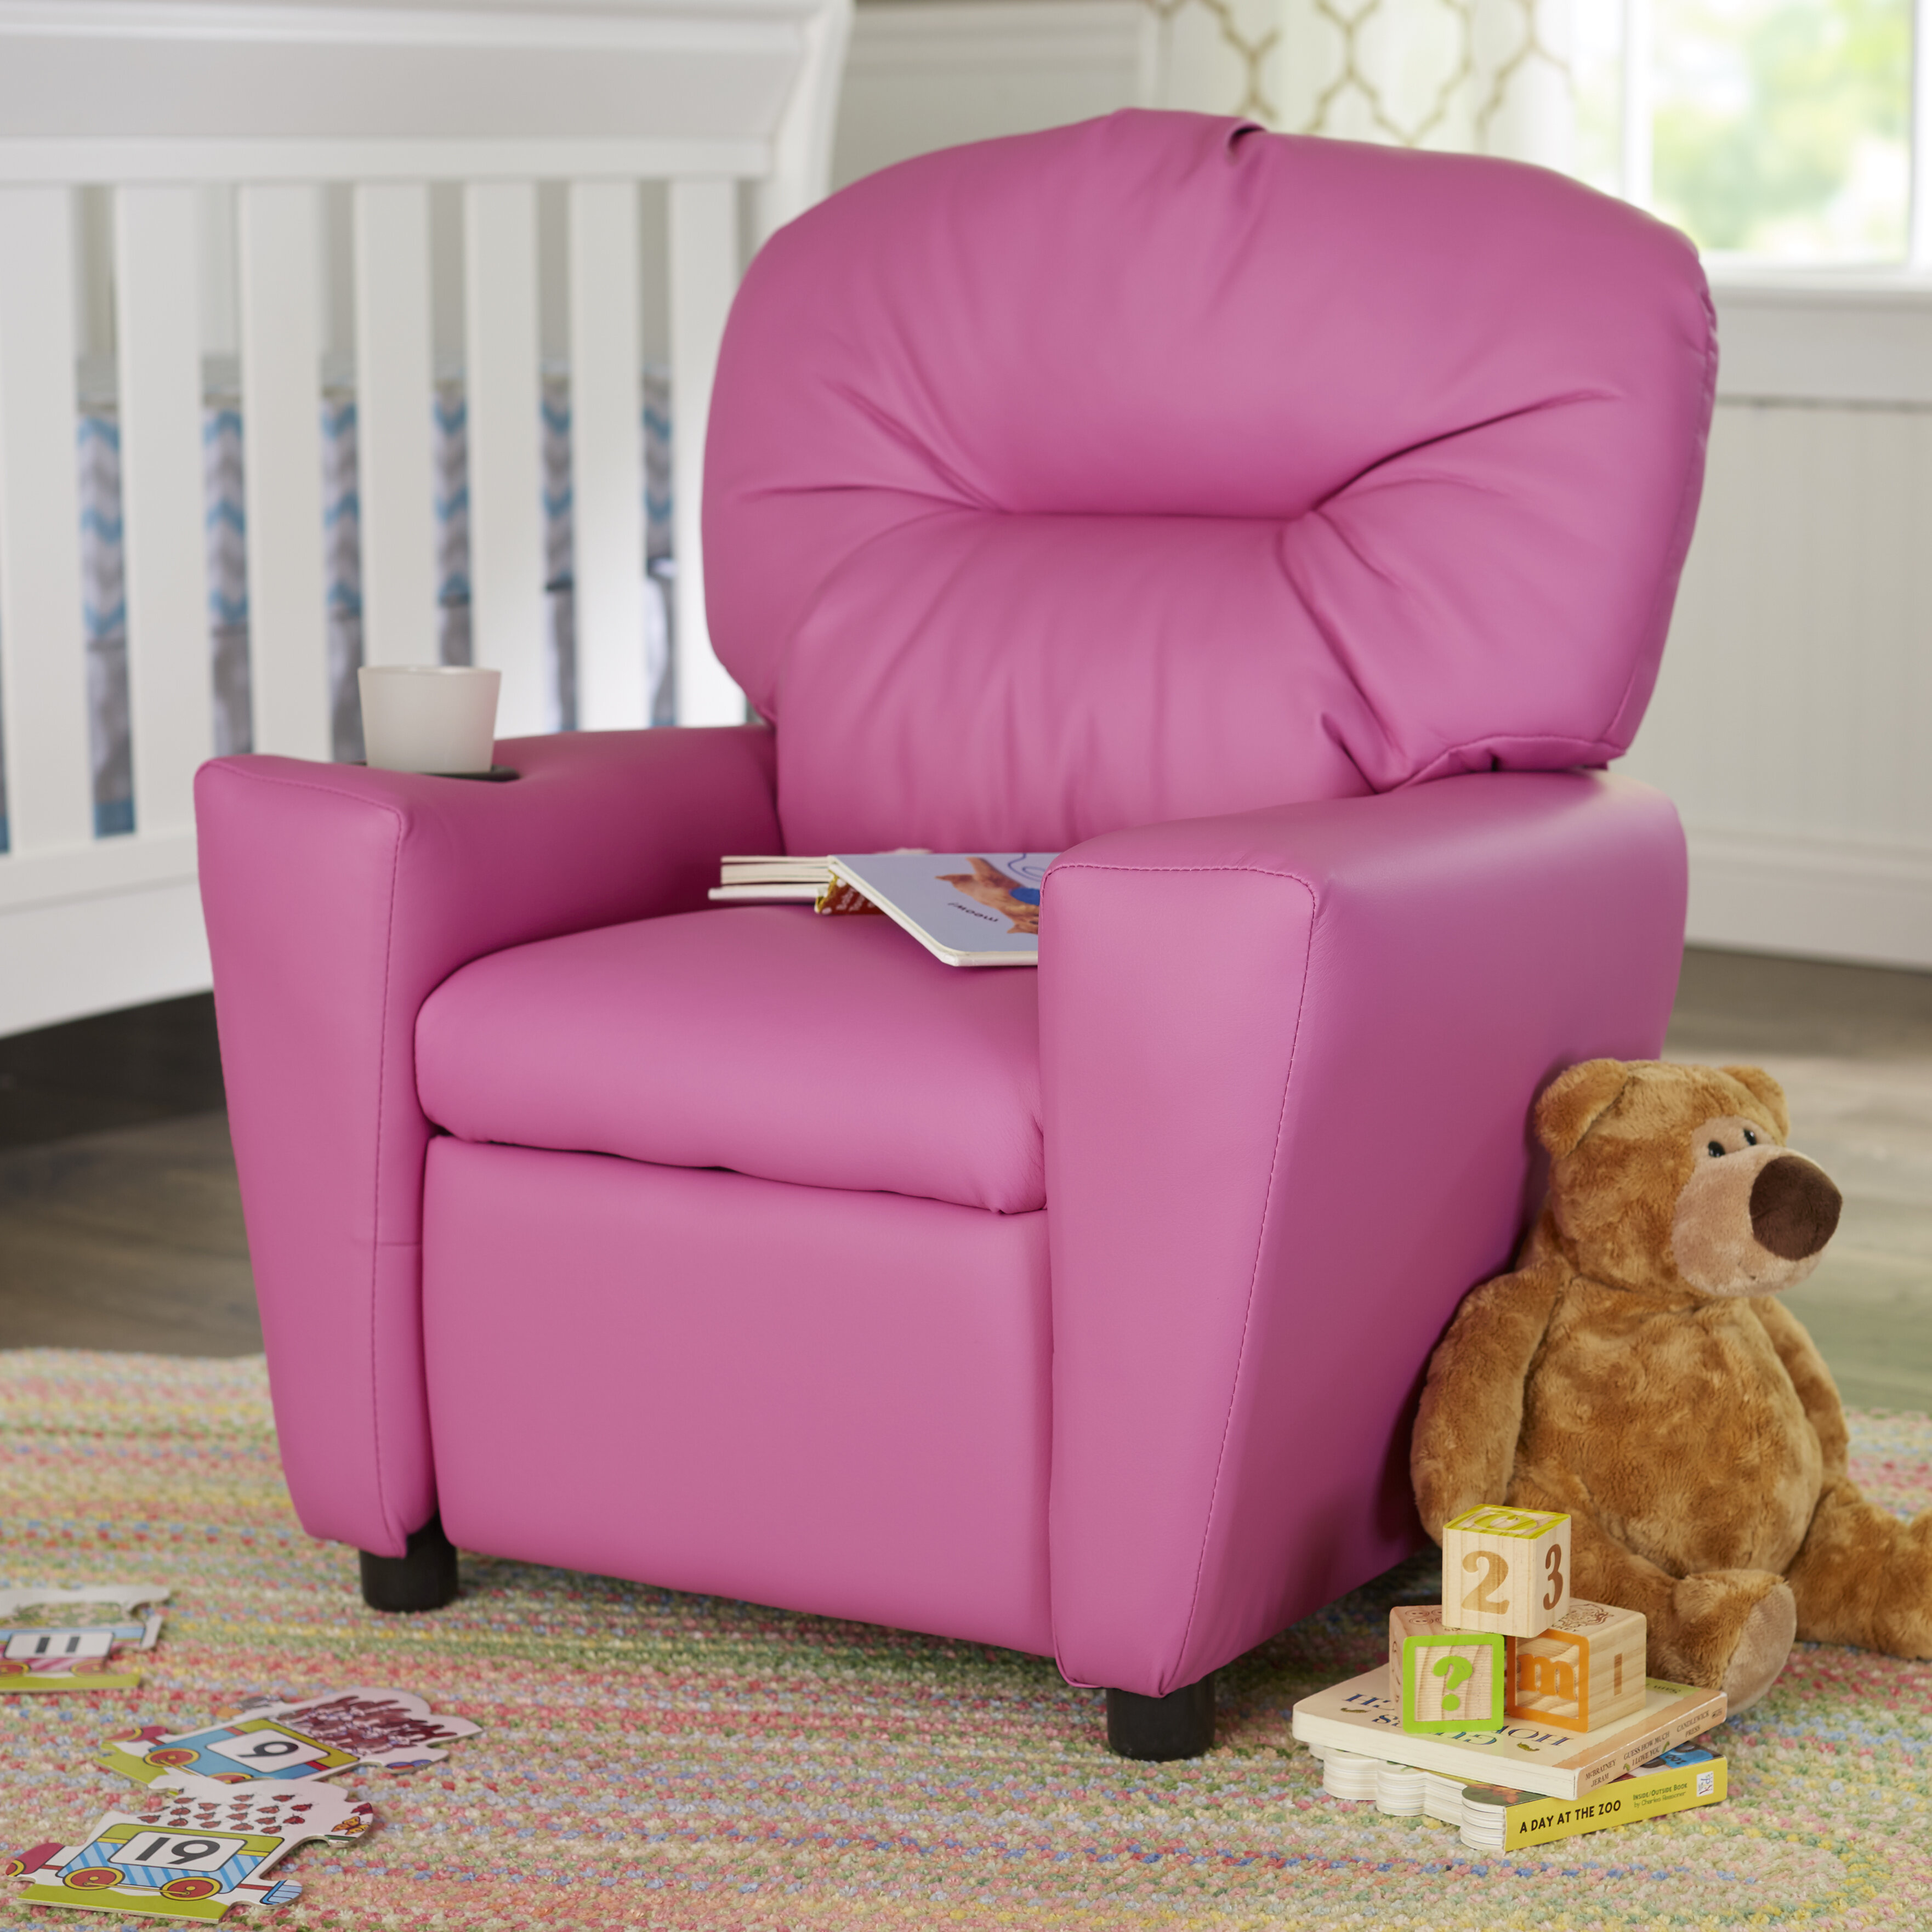 Blevins Kids Chair with Cup Holder